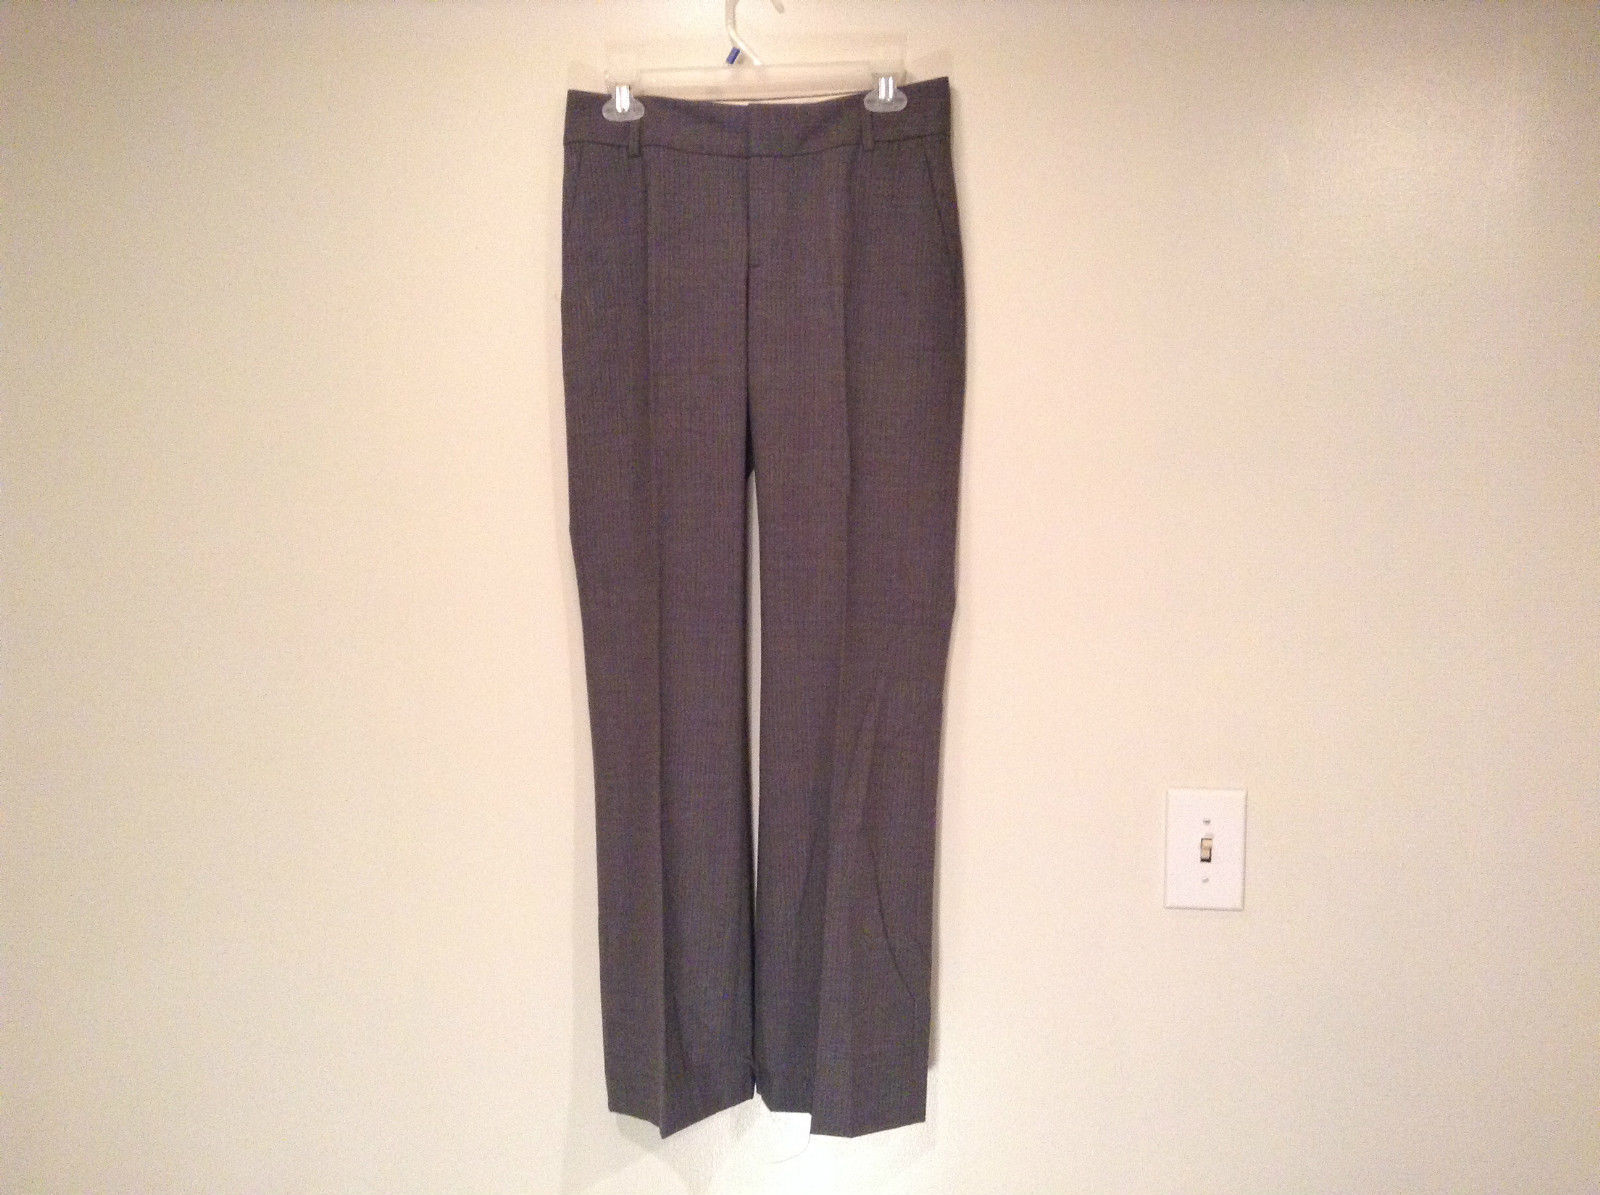 Banana Republic Size 4 Fully Lined Gray Dress Pants Very Nice Pleated Front